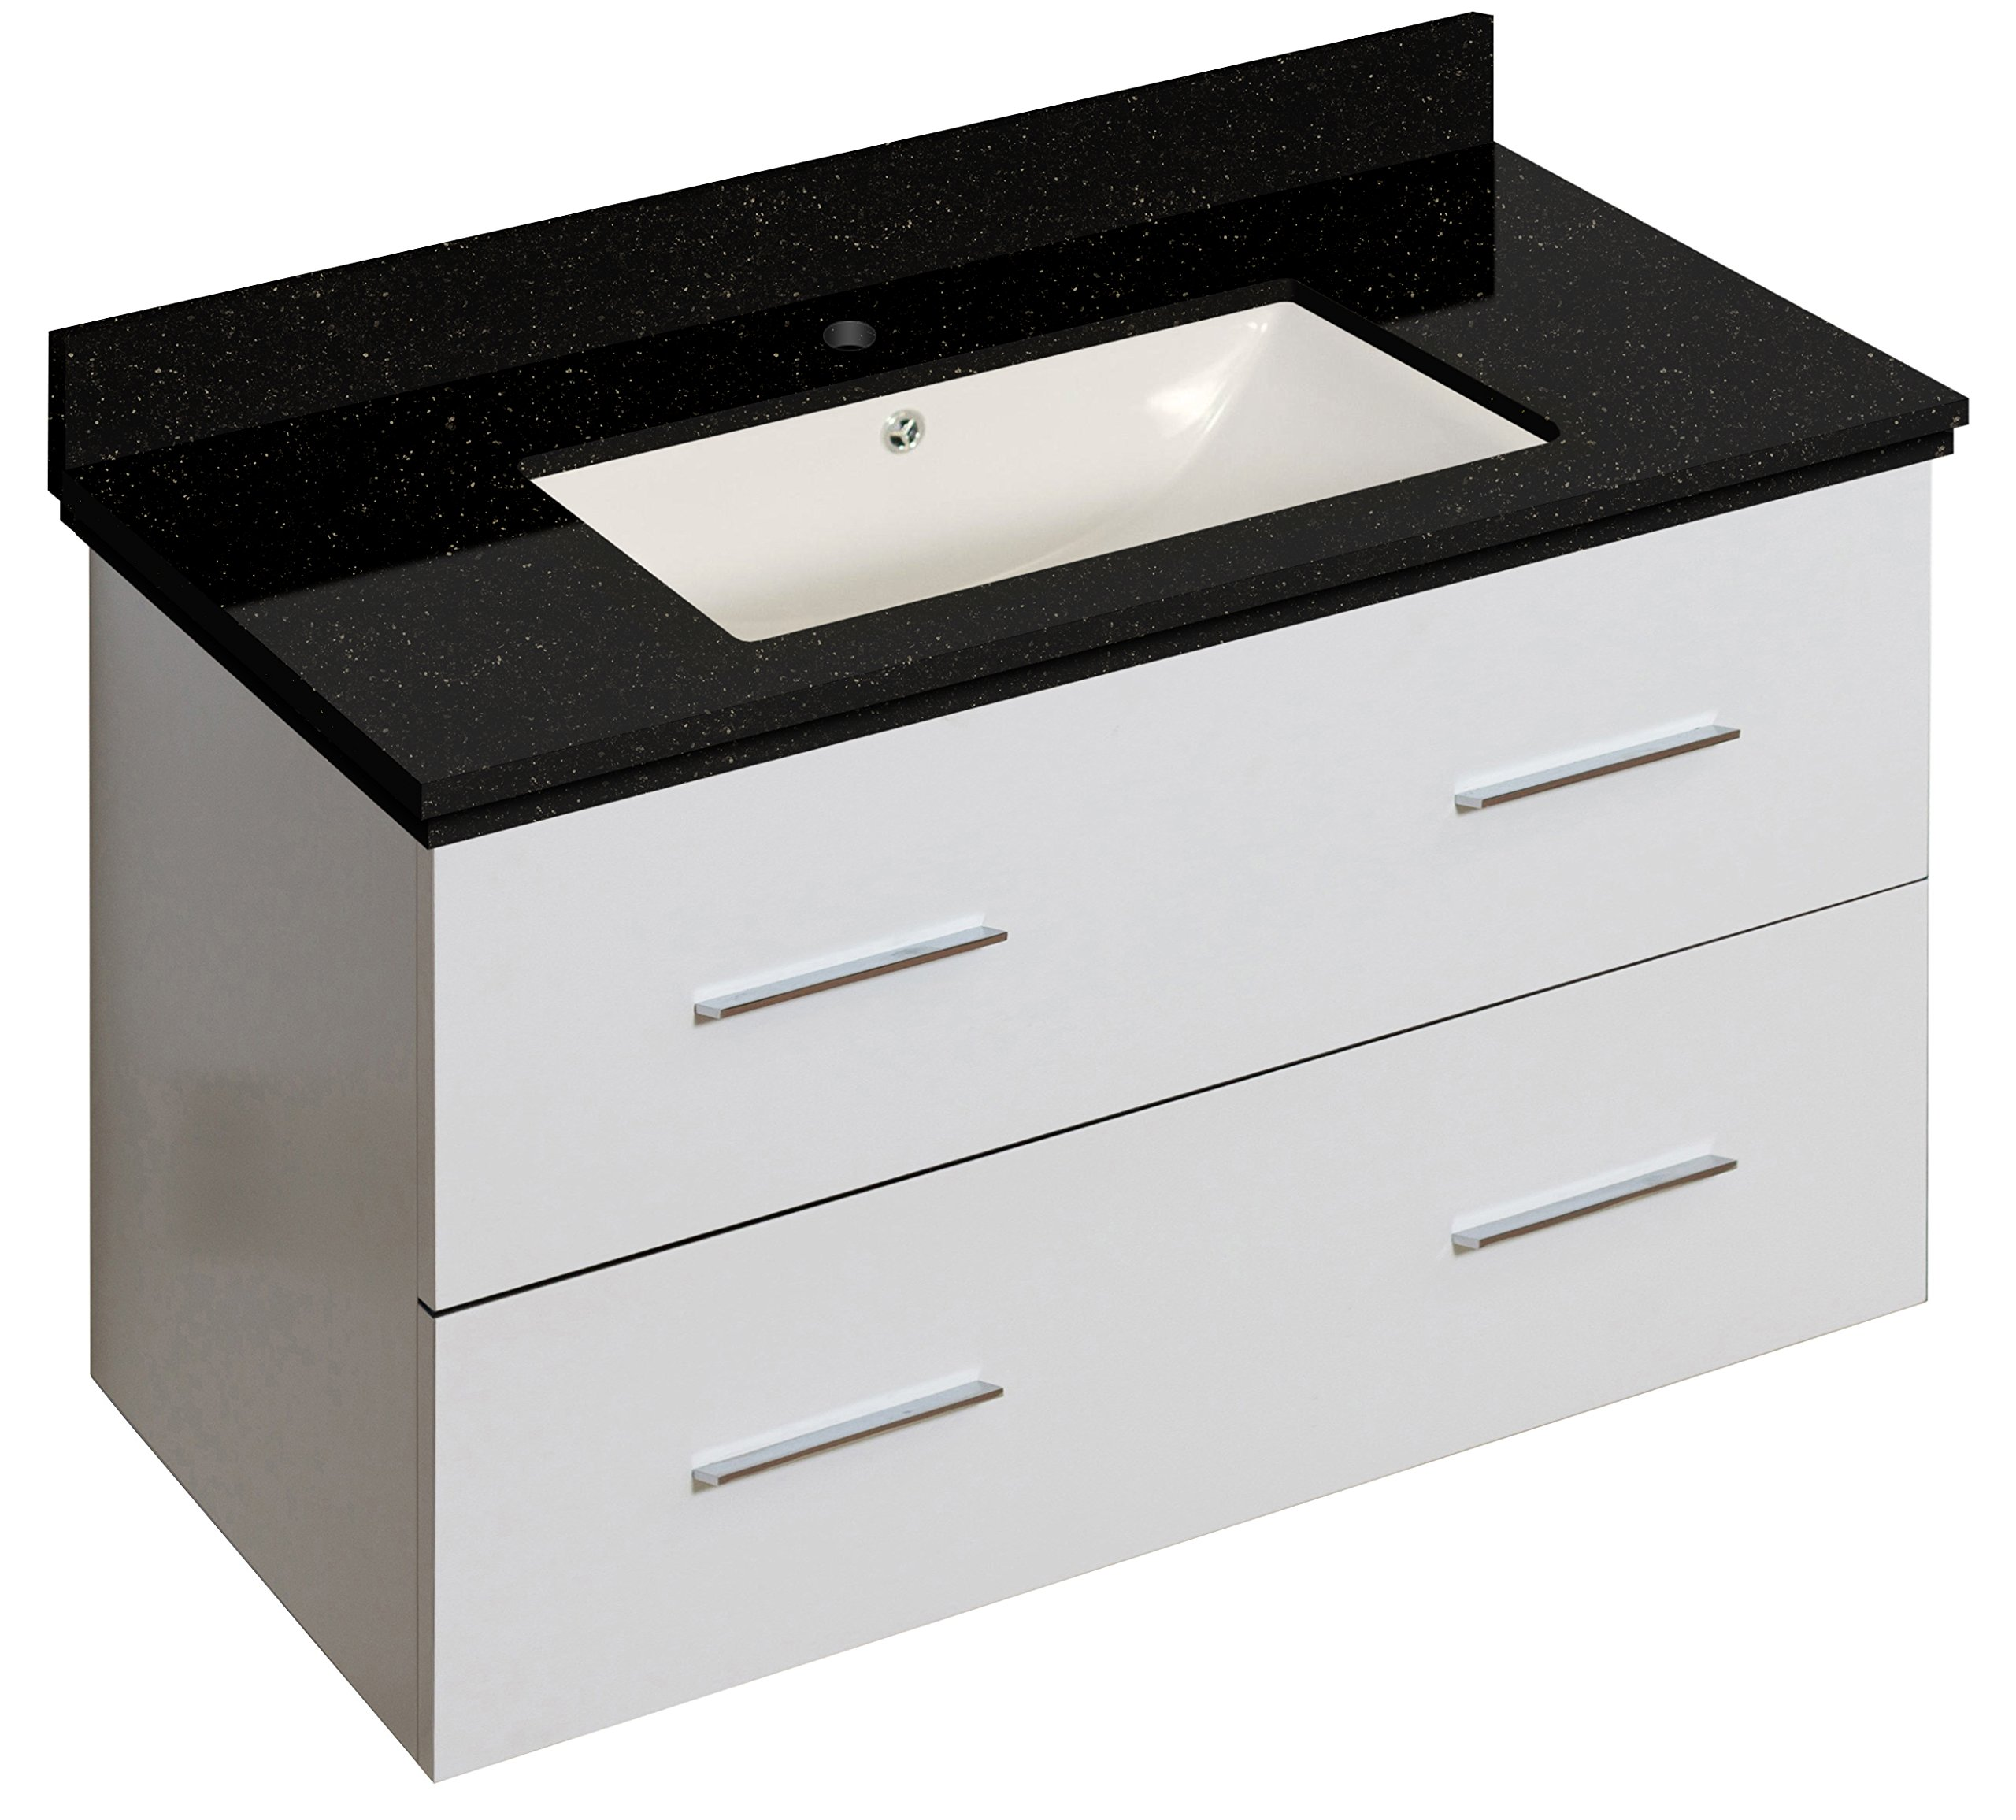 American Imaginations AI-888-18683 Vanity Set White - This product is a Bundle (set of multiple products). this vanity set belongs to the Xena series. This vanity set features a rectangle shape with a modern style. Comes with an overflow for safety This vanity set features 1 sink. This vanity set features 2 drawers. The Color of the undermount sink is biscuit. This vanity set is made with plywood-melamine Double fired and glazed for durability and stain resistance. 1.75-In. Standard usa-canada drain opening. Sink cut-out included in the box. No mdf or chipboard used. Cabinet hardware included - bathroom-vanities, bathroom-fixtures-hardware, bathroom - 81dMykf8DrL -